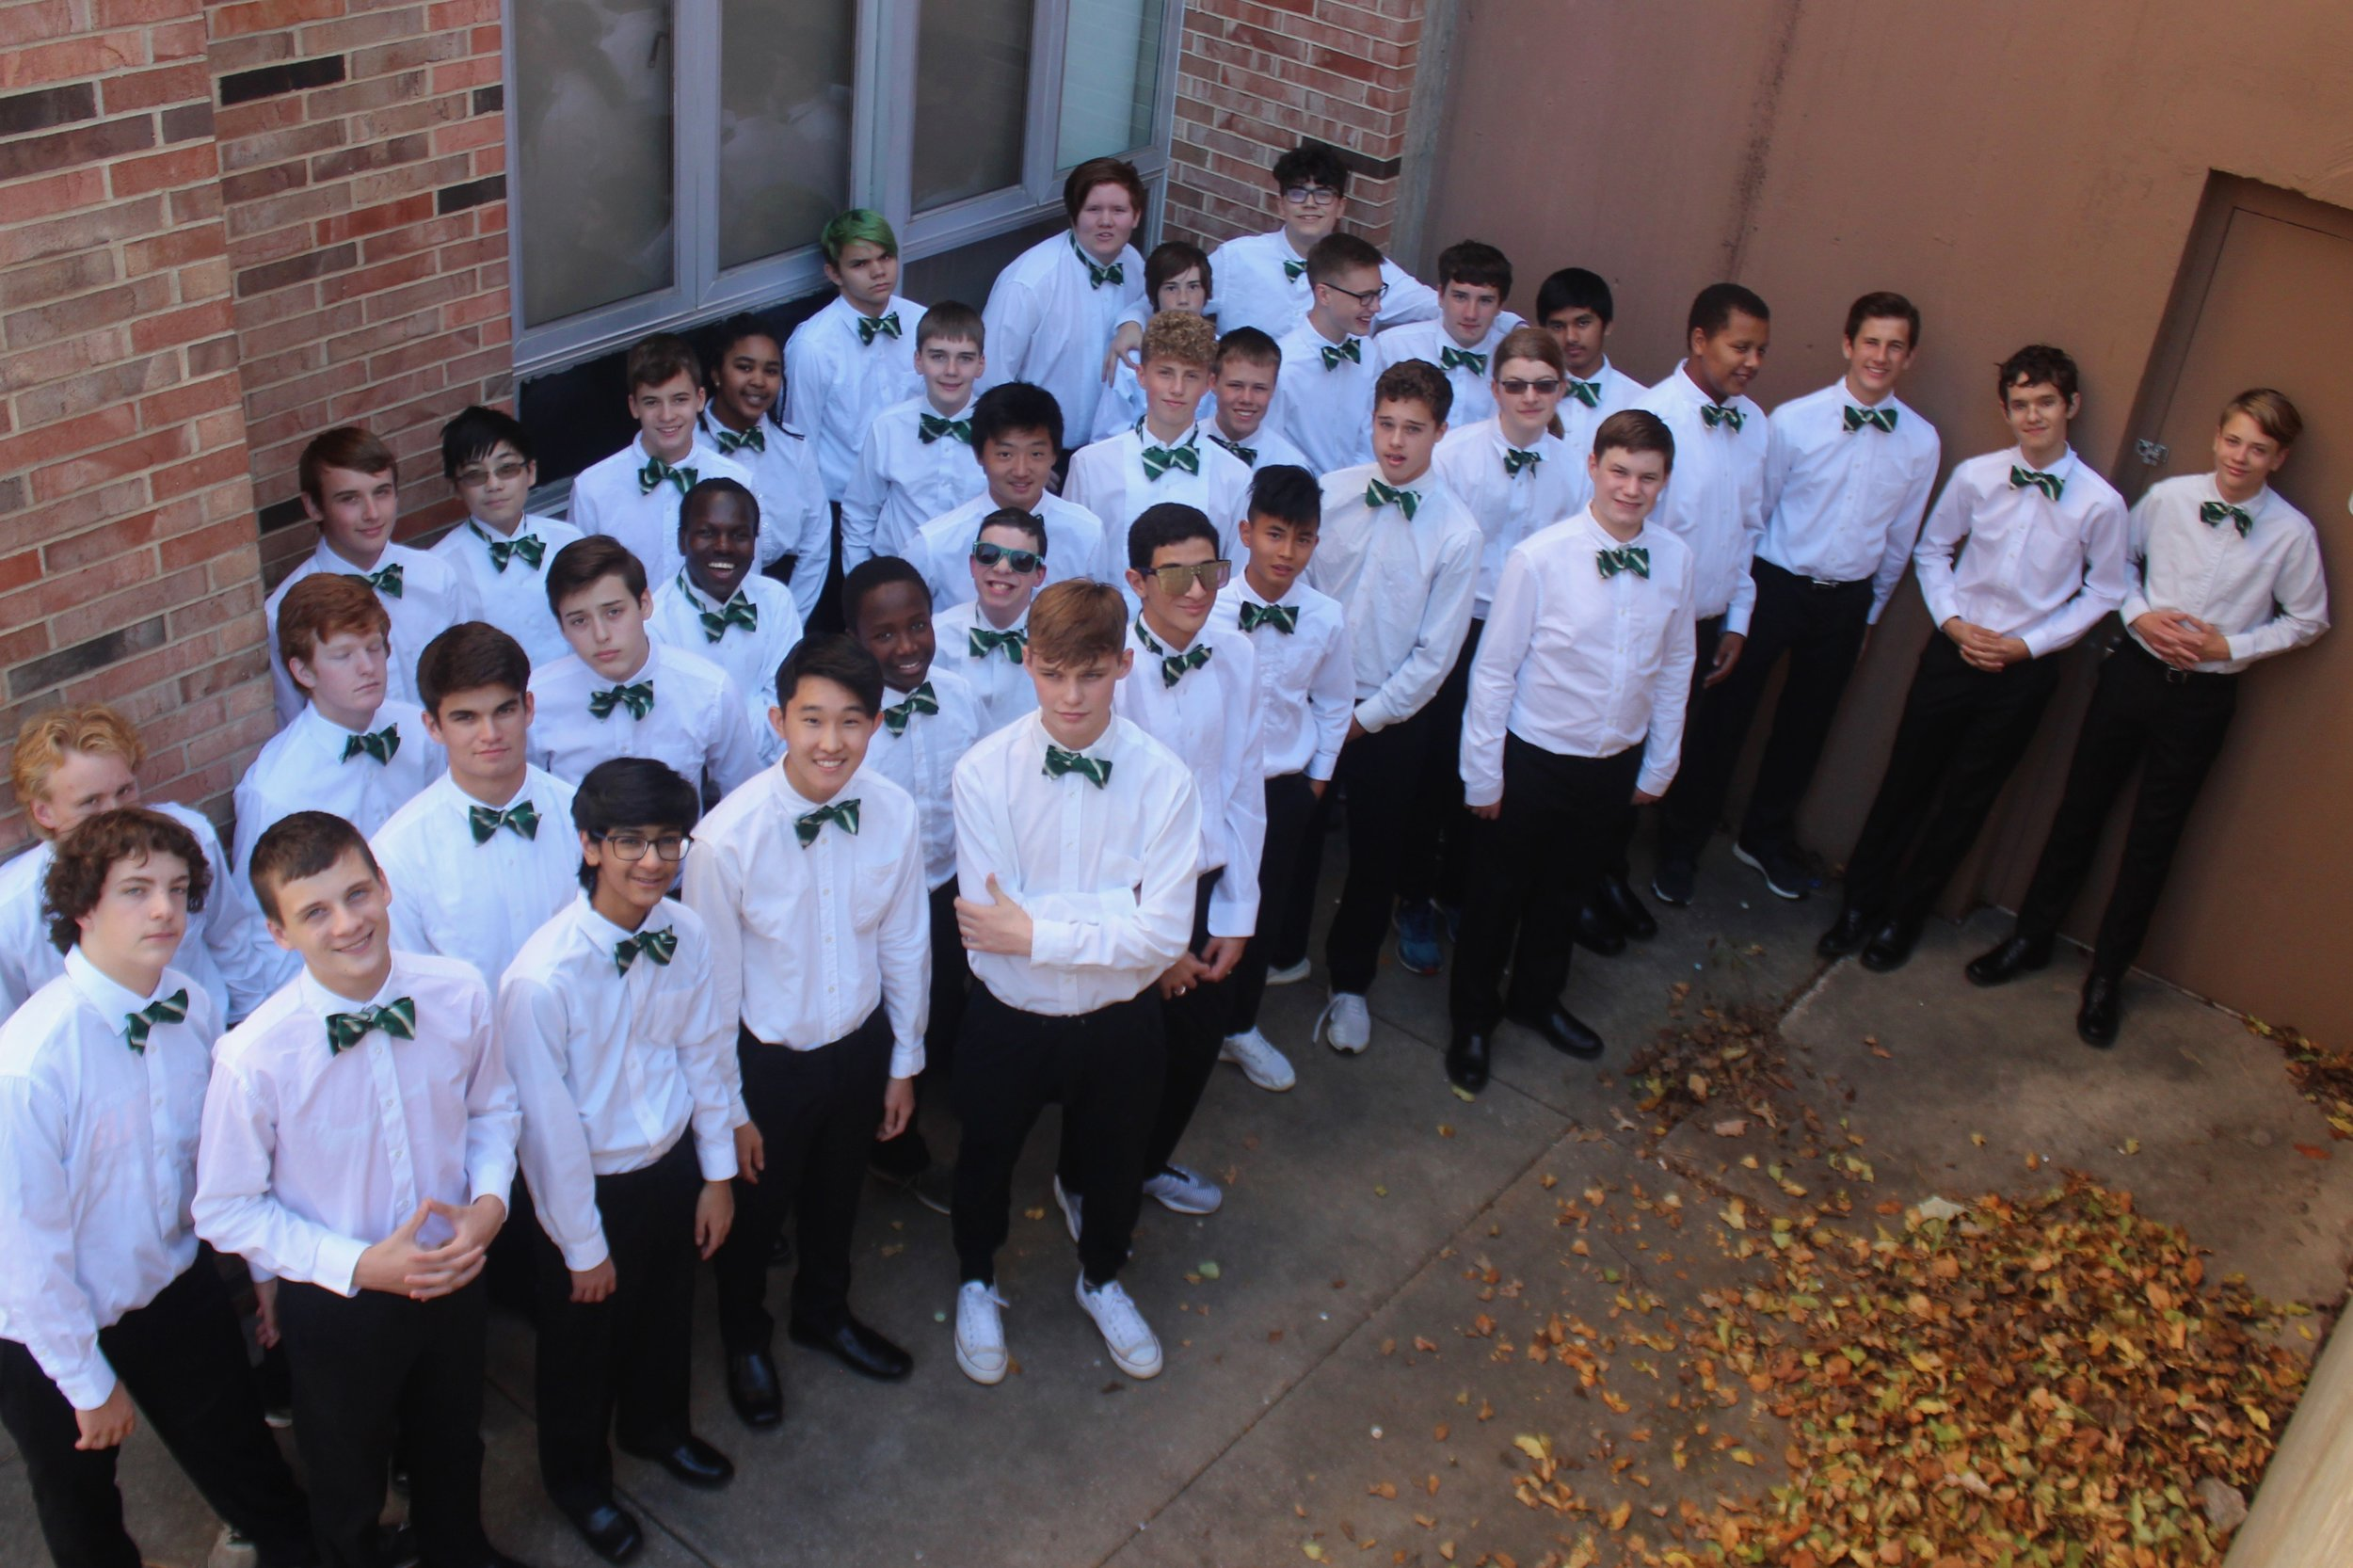 Bass Choir 2019